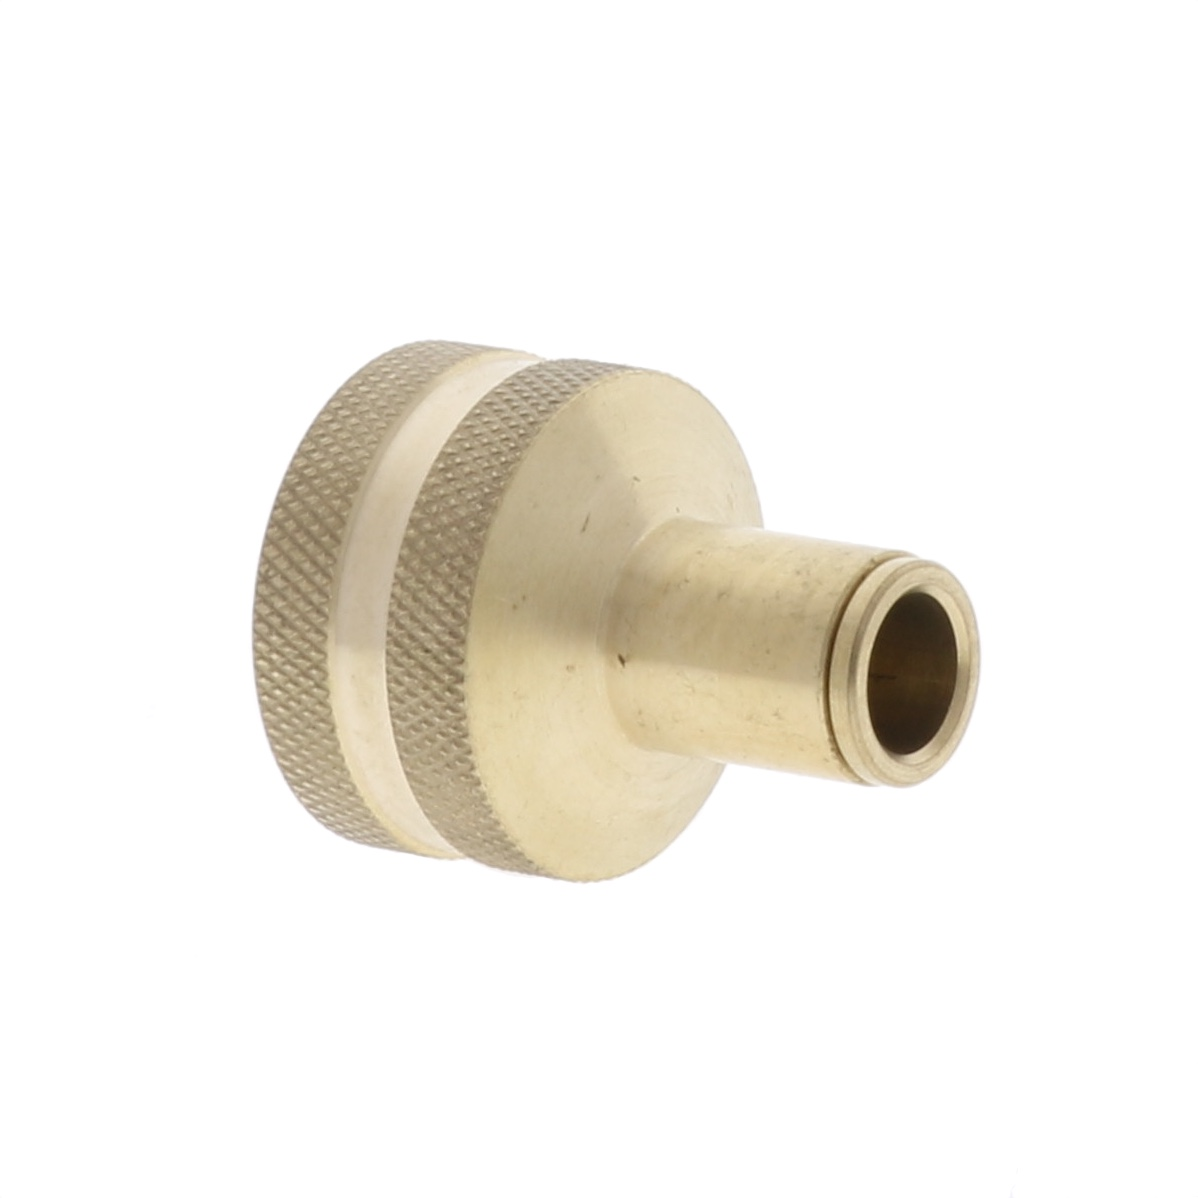 Dig Misting Mainline Faucet Connector with Screen Filter